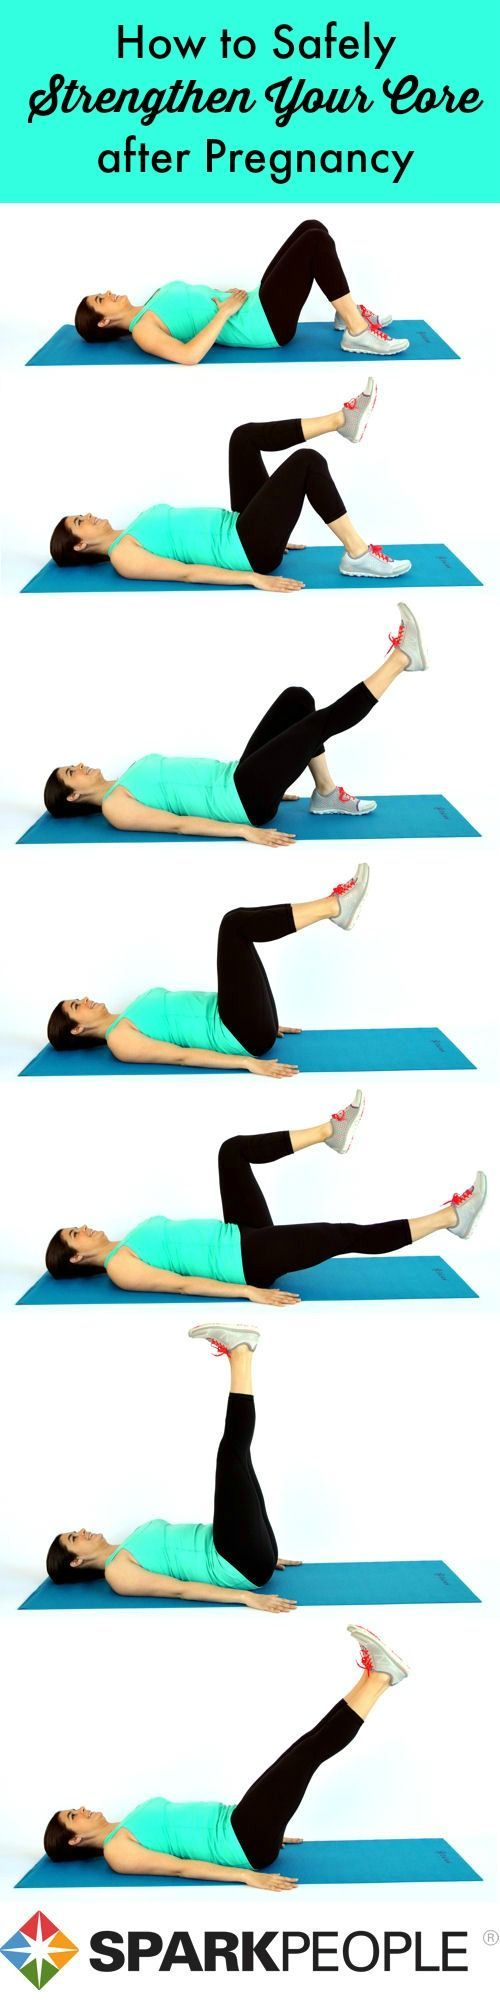 Safely re-build your #core after #pregnancy with this gentle routine! | via @SparkPeople #postpartum #fitness